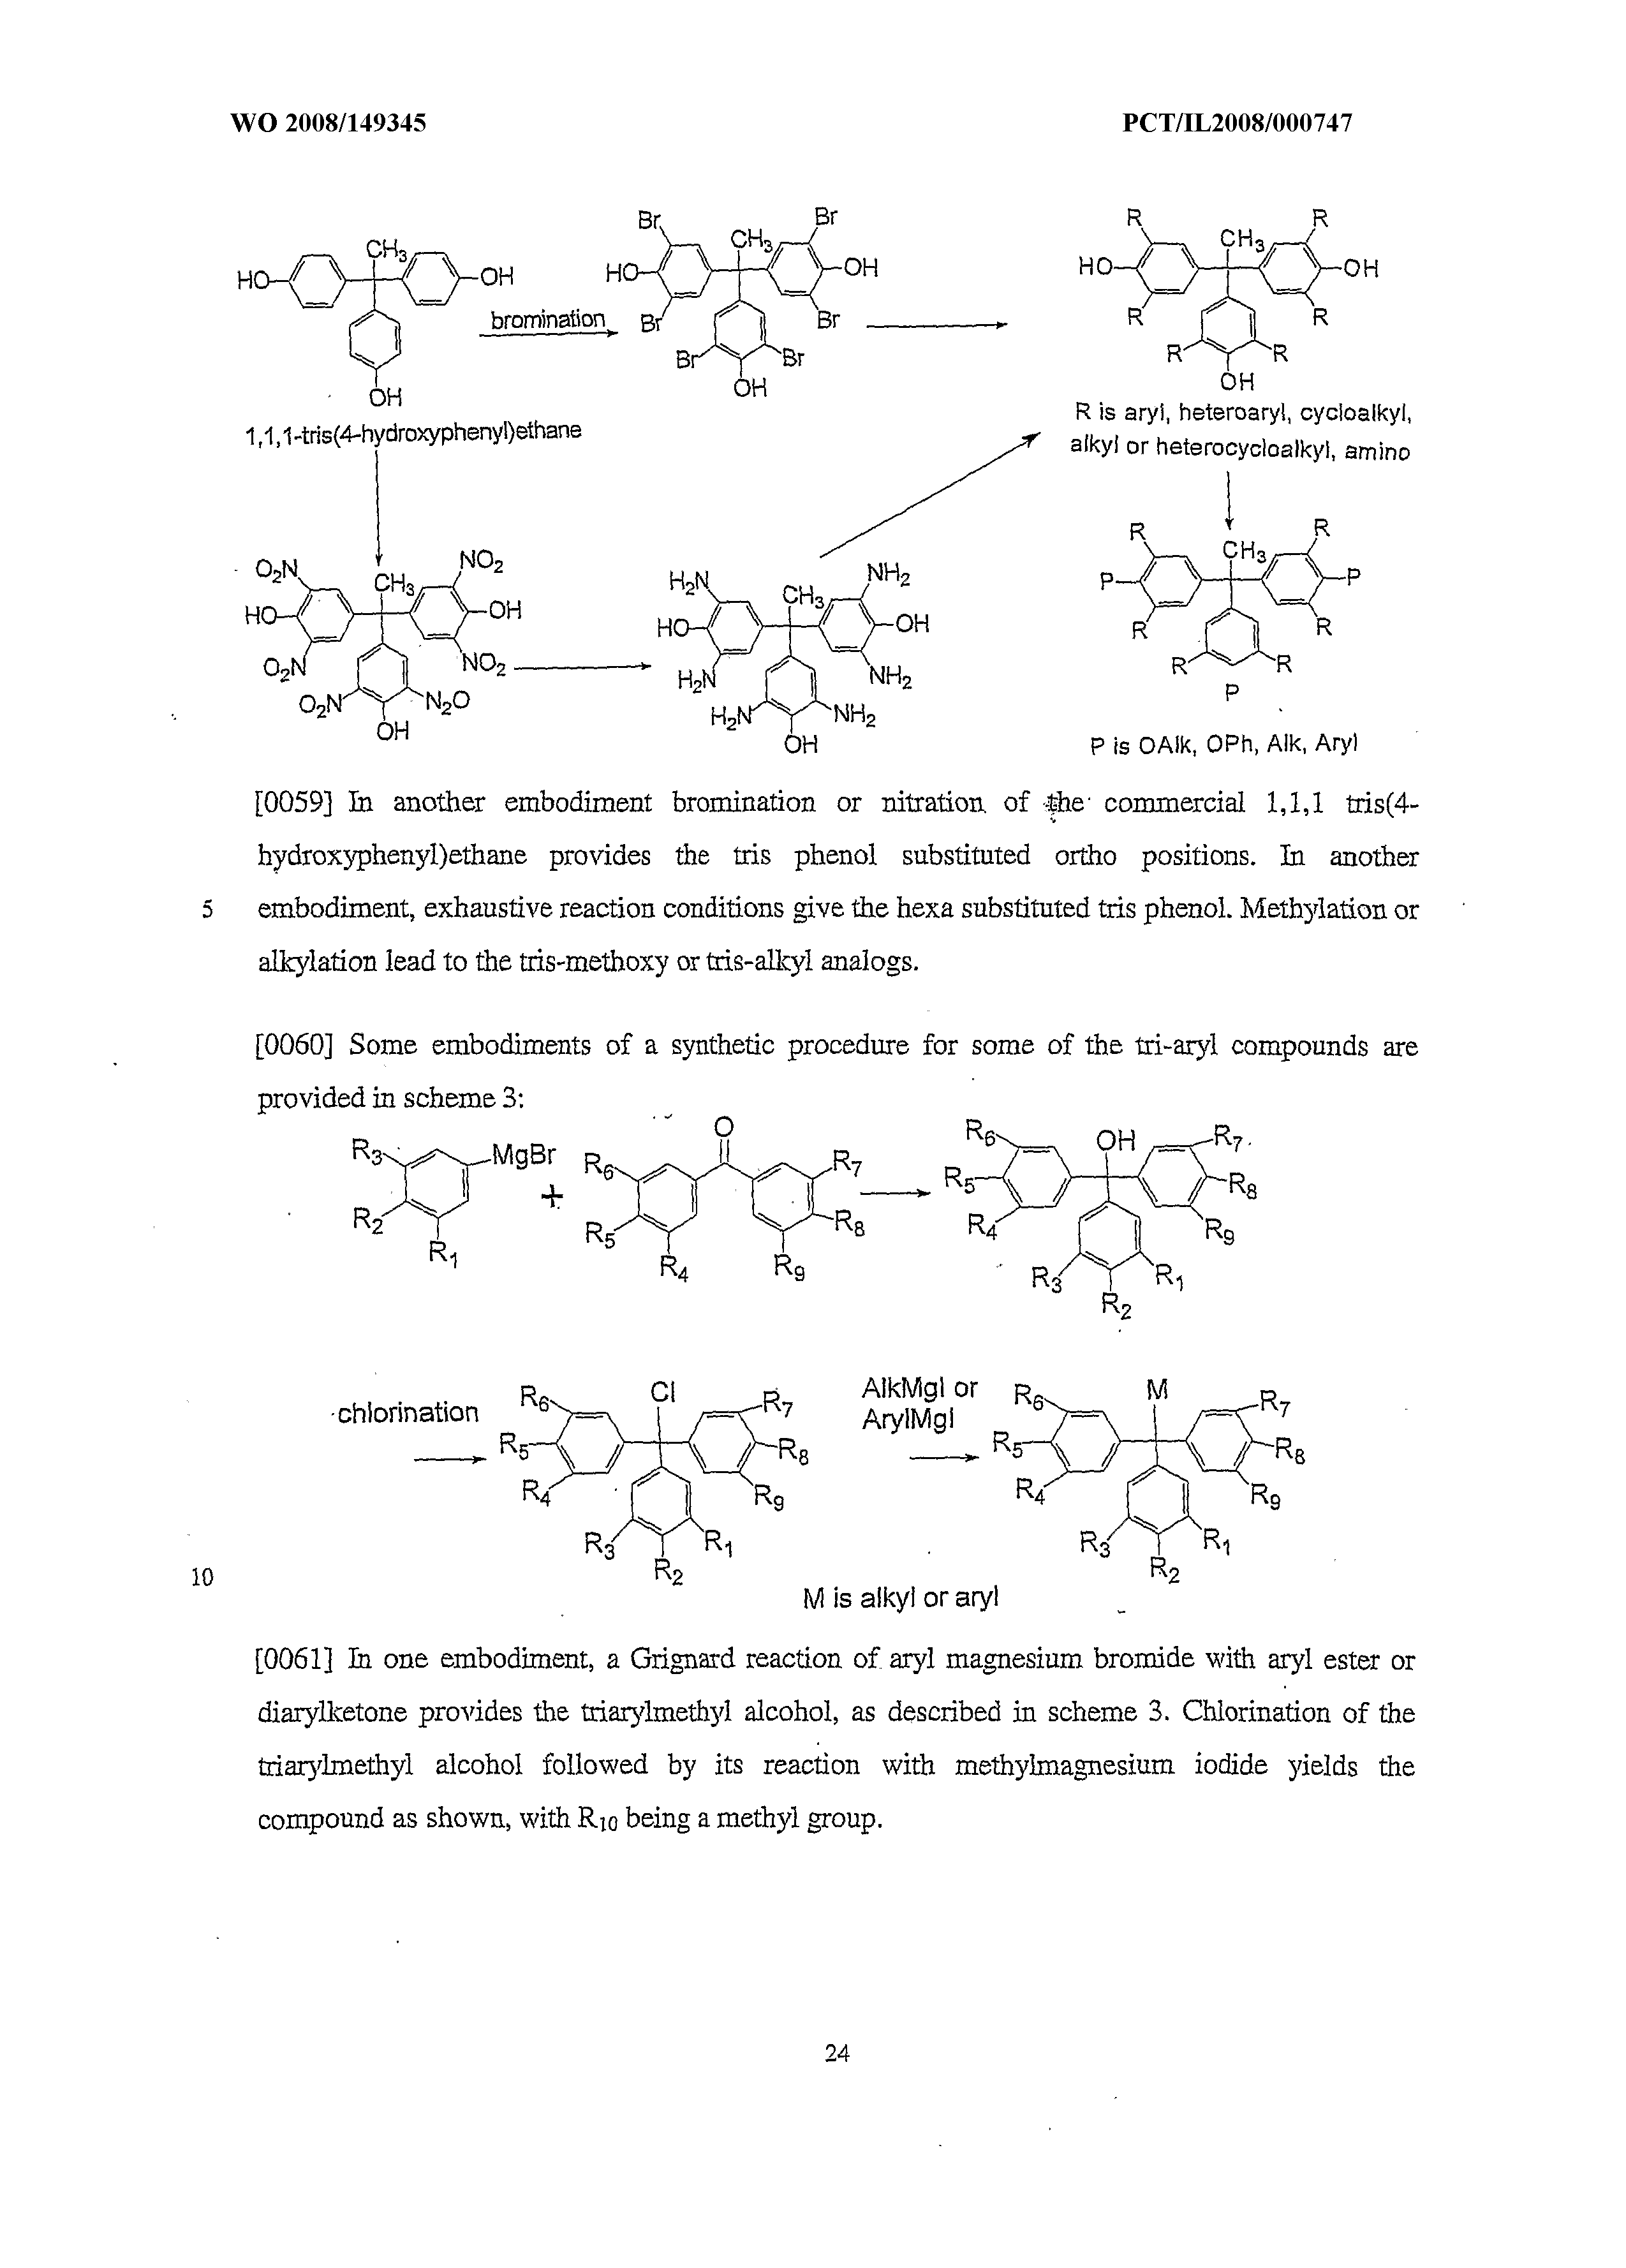 WO 2008/149345 A2 - Tri-aryl Compounds And Compositions